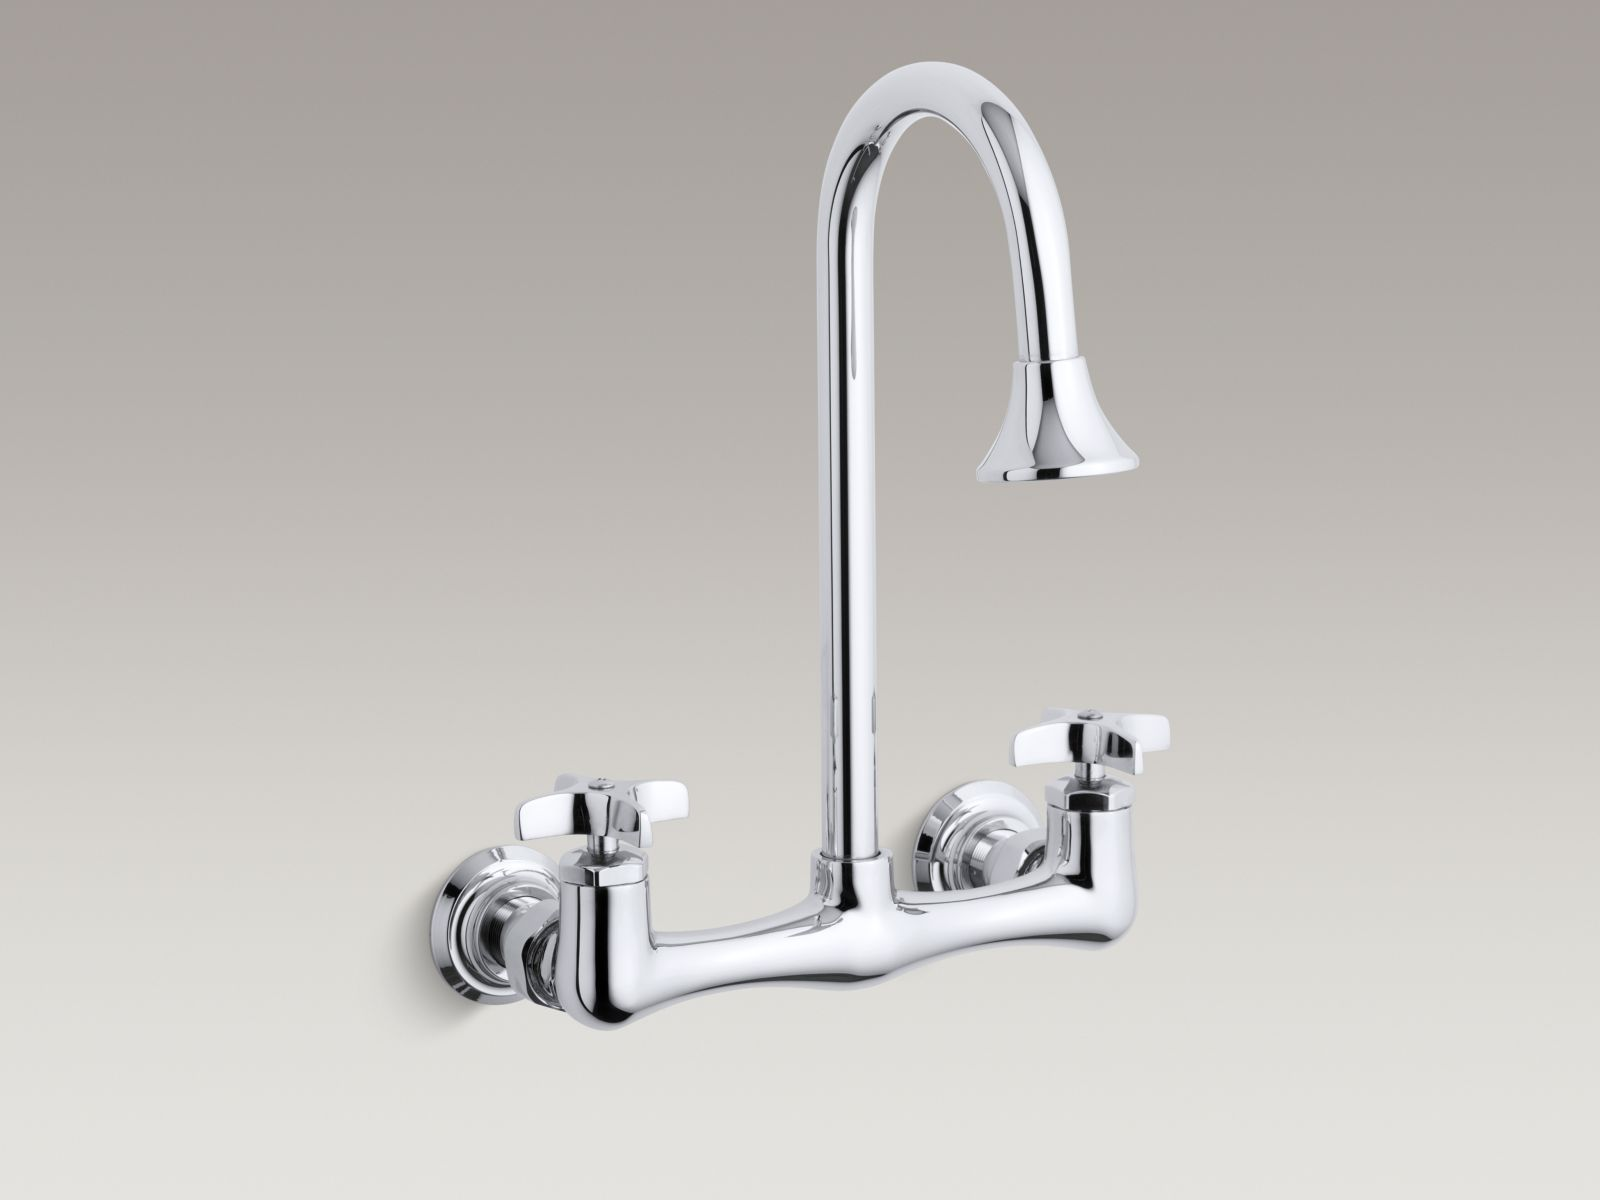 Remarkable Kohler Faucet for Tremendous Kitchen or Bathroom ...